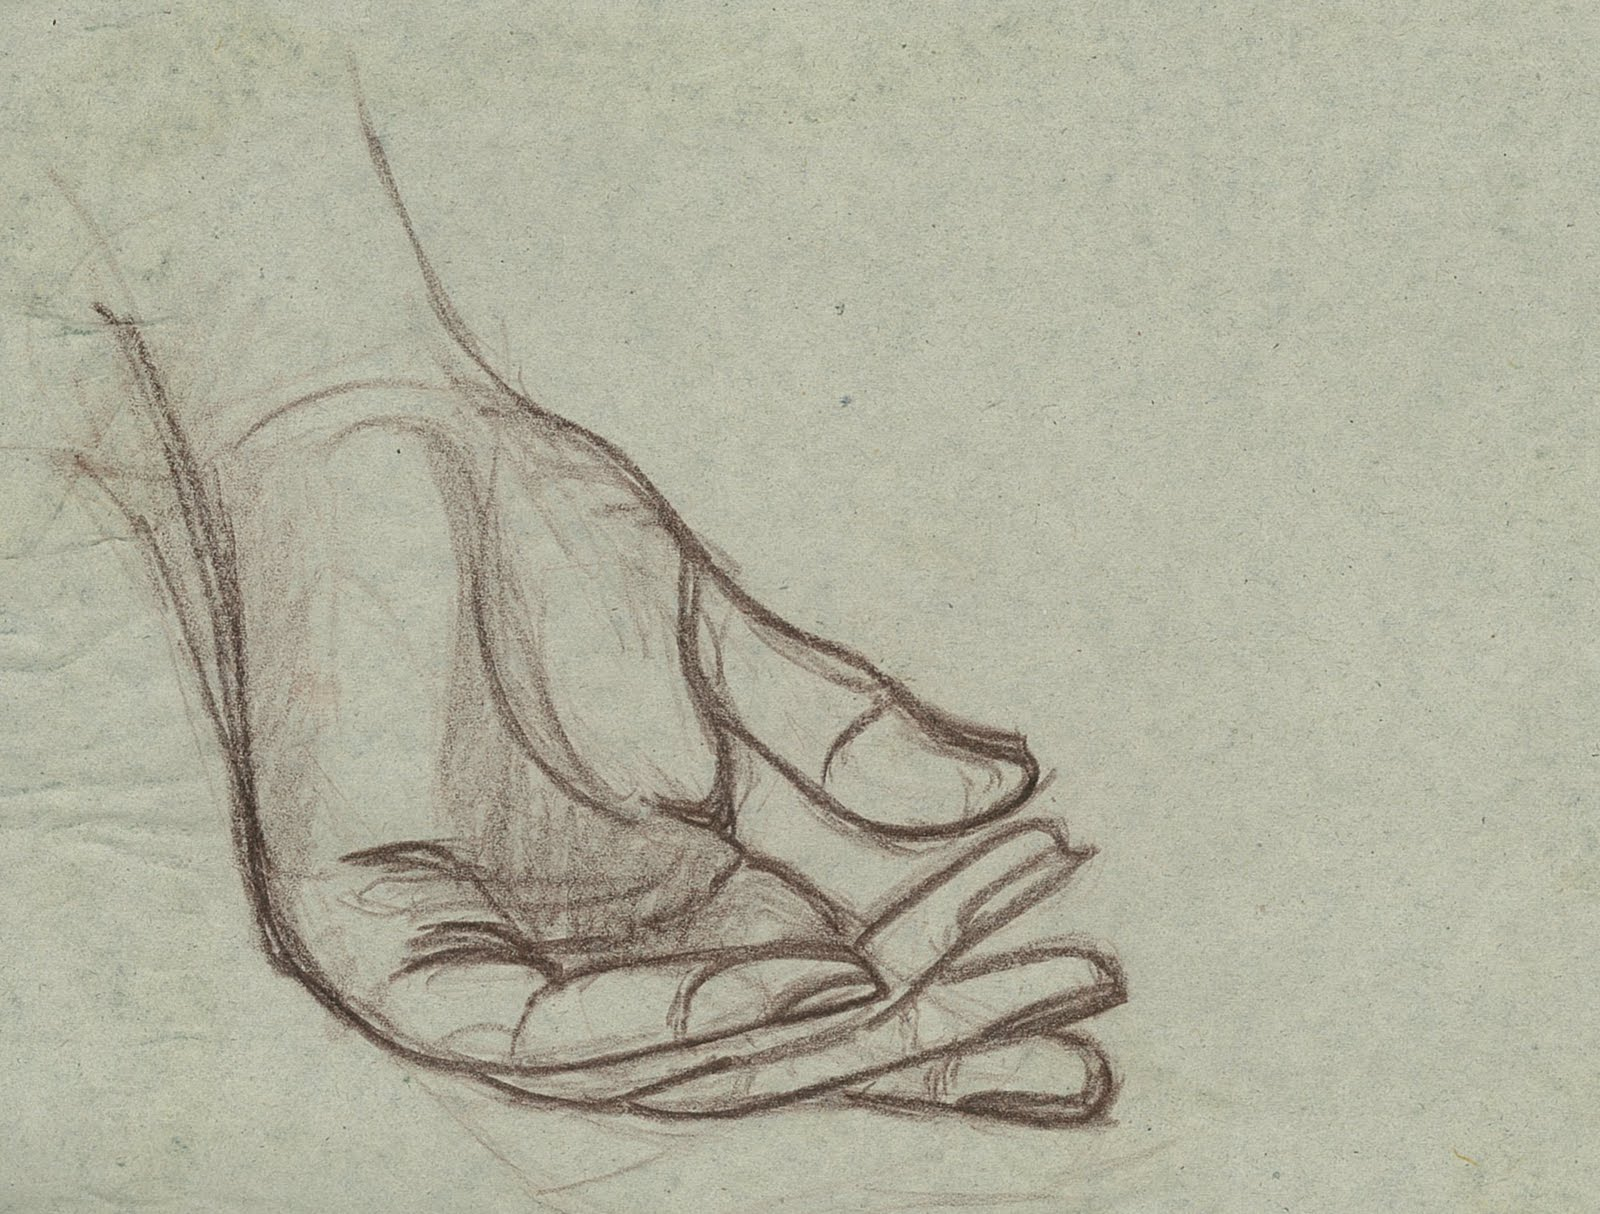 D Line Drawing Hand : Kris art works hand line drawing